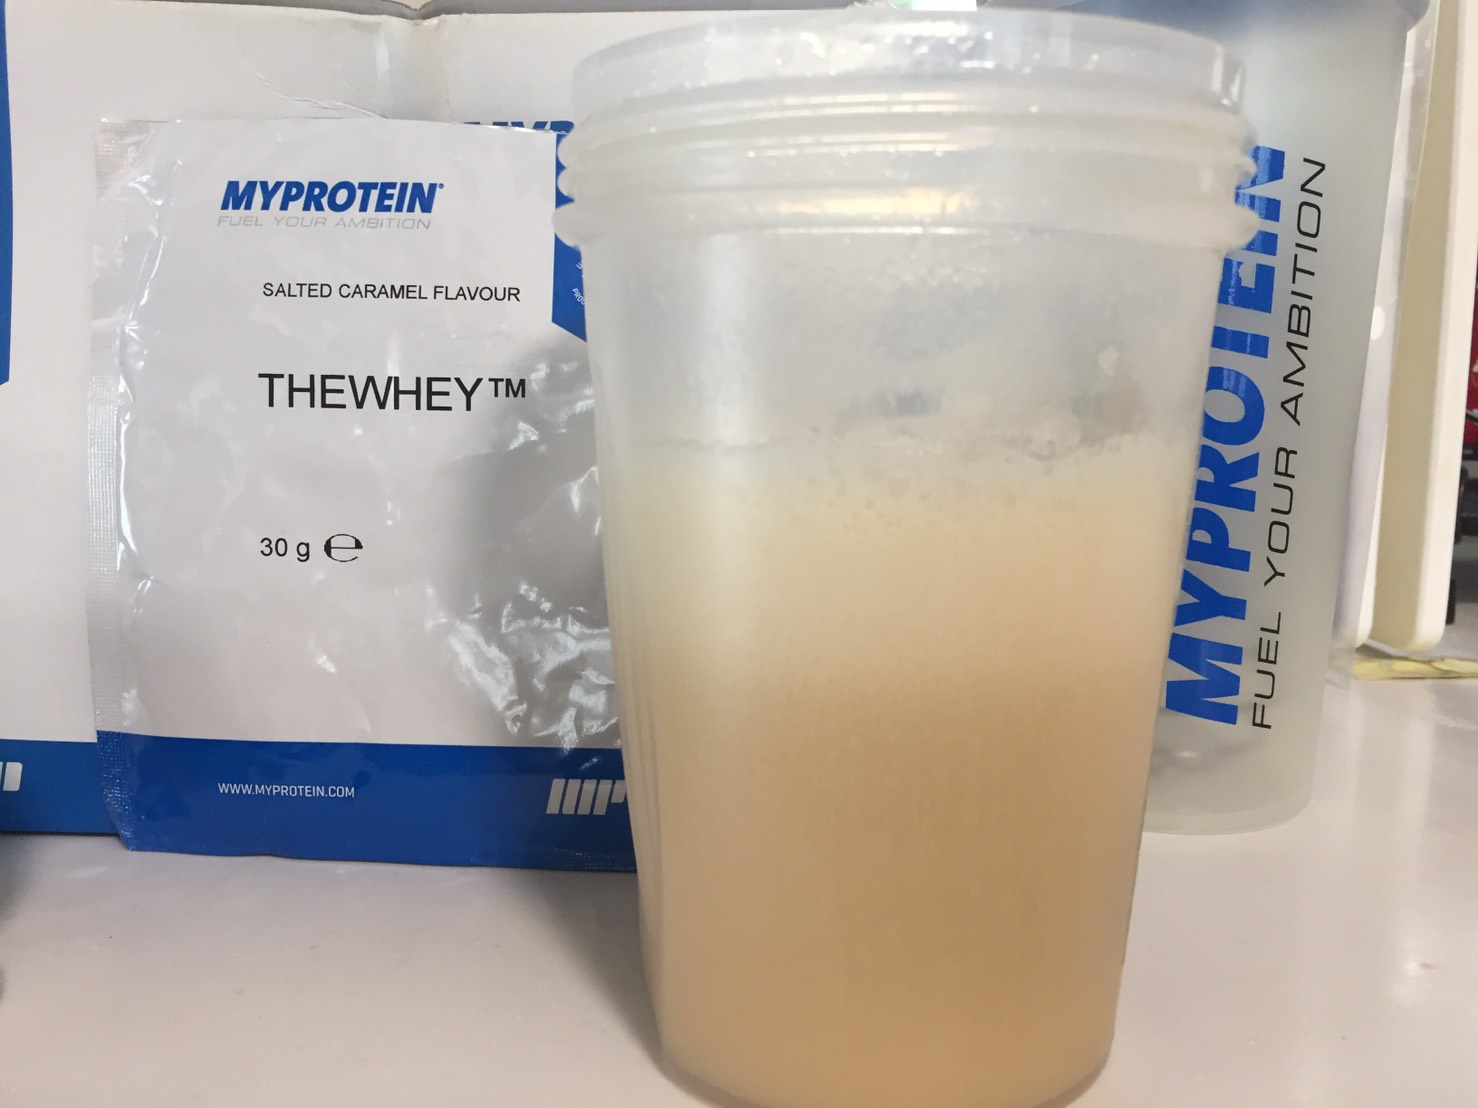 THEWHEY「SALTED CARAMEL FALVOUR(塩キャラメル味)」を横から撮影した様子